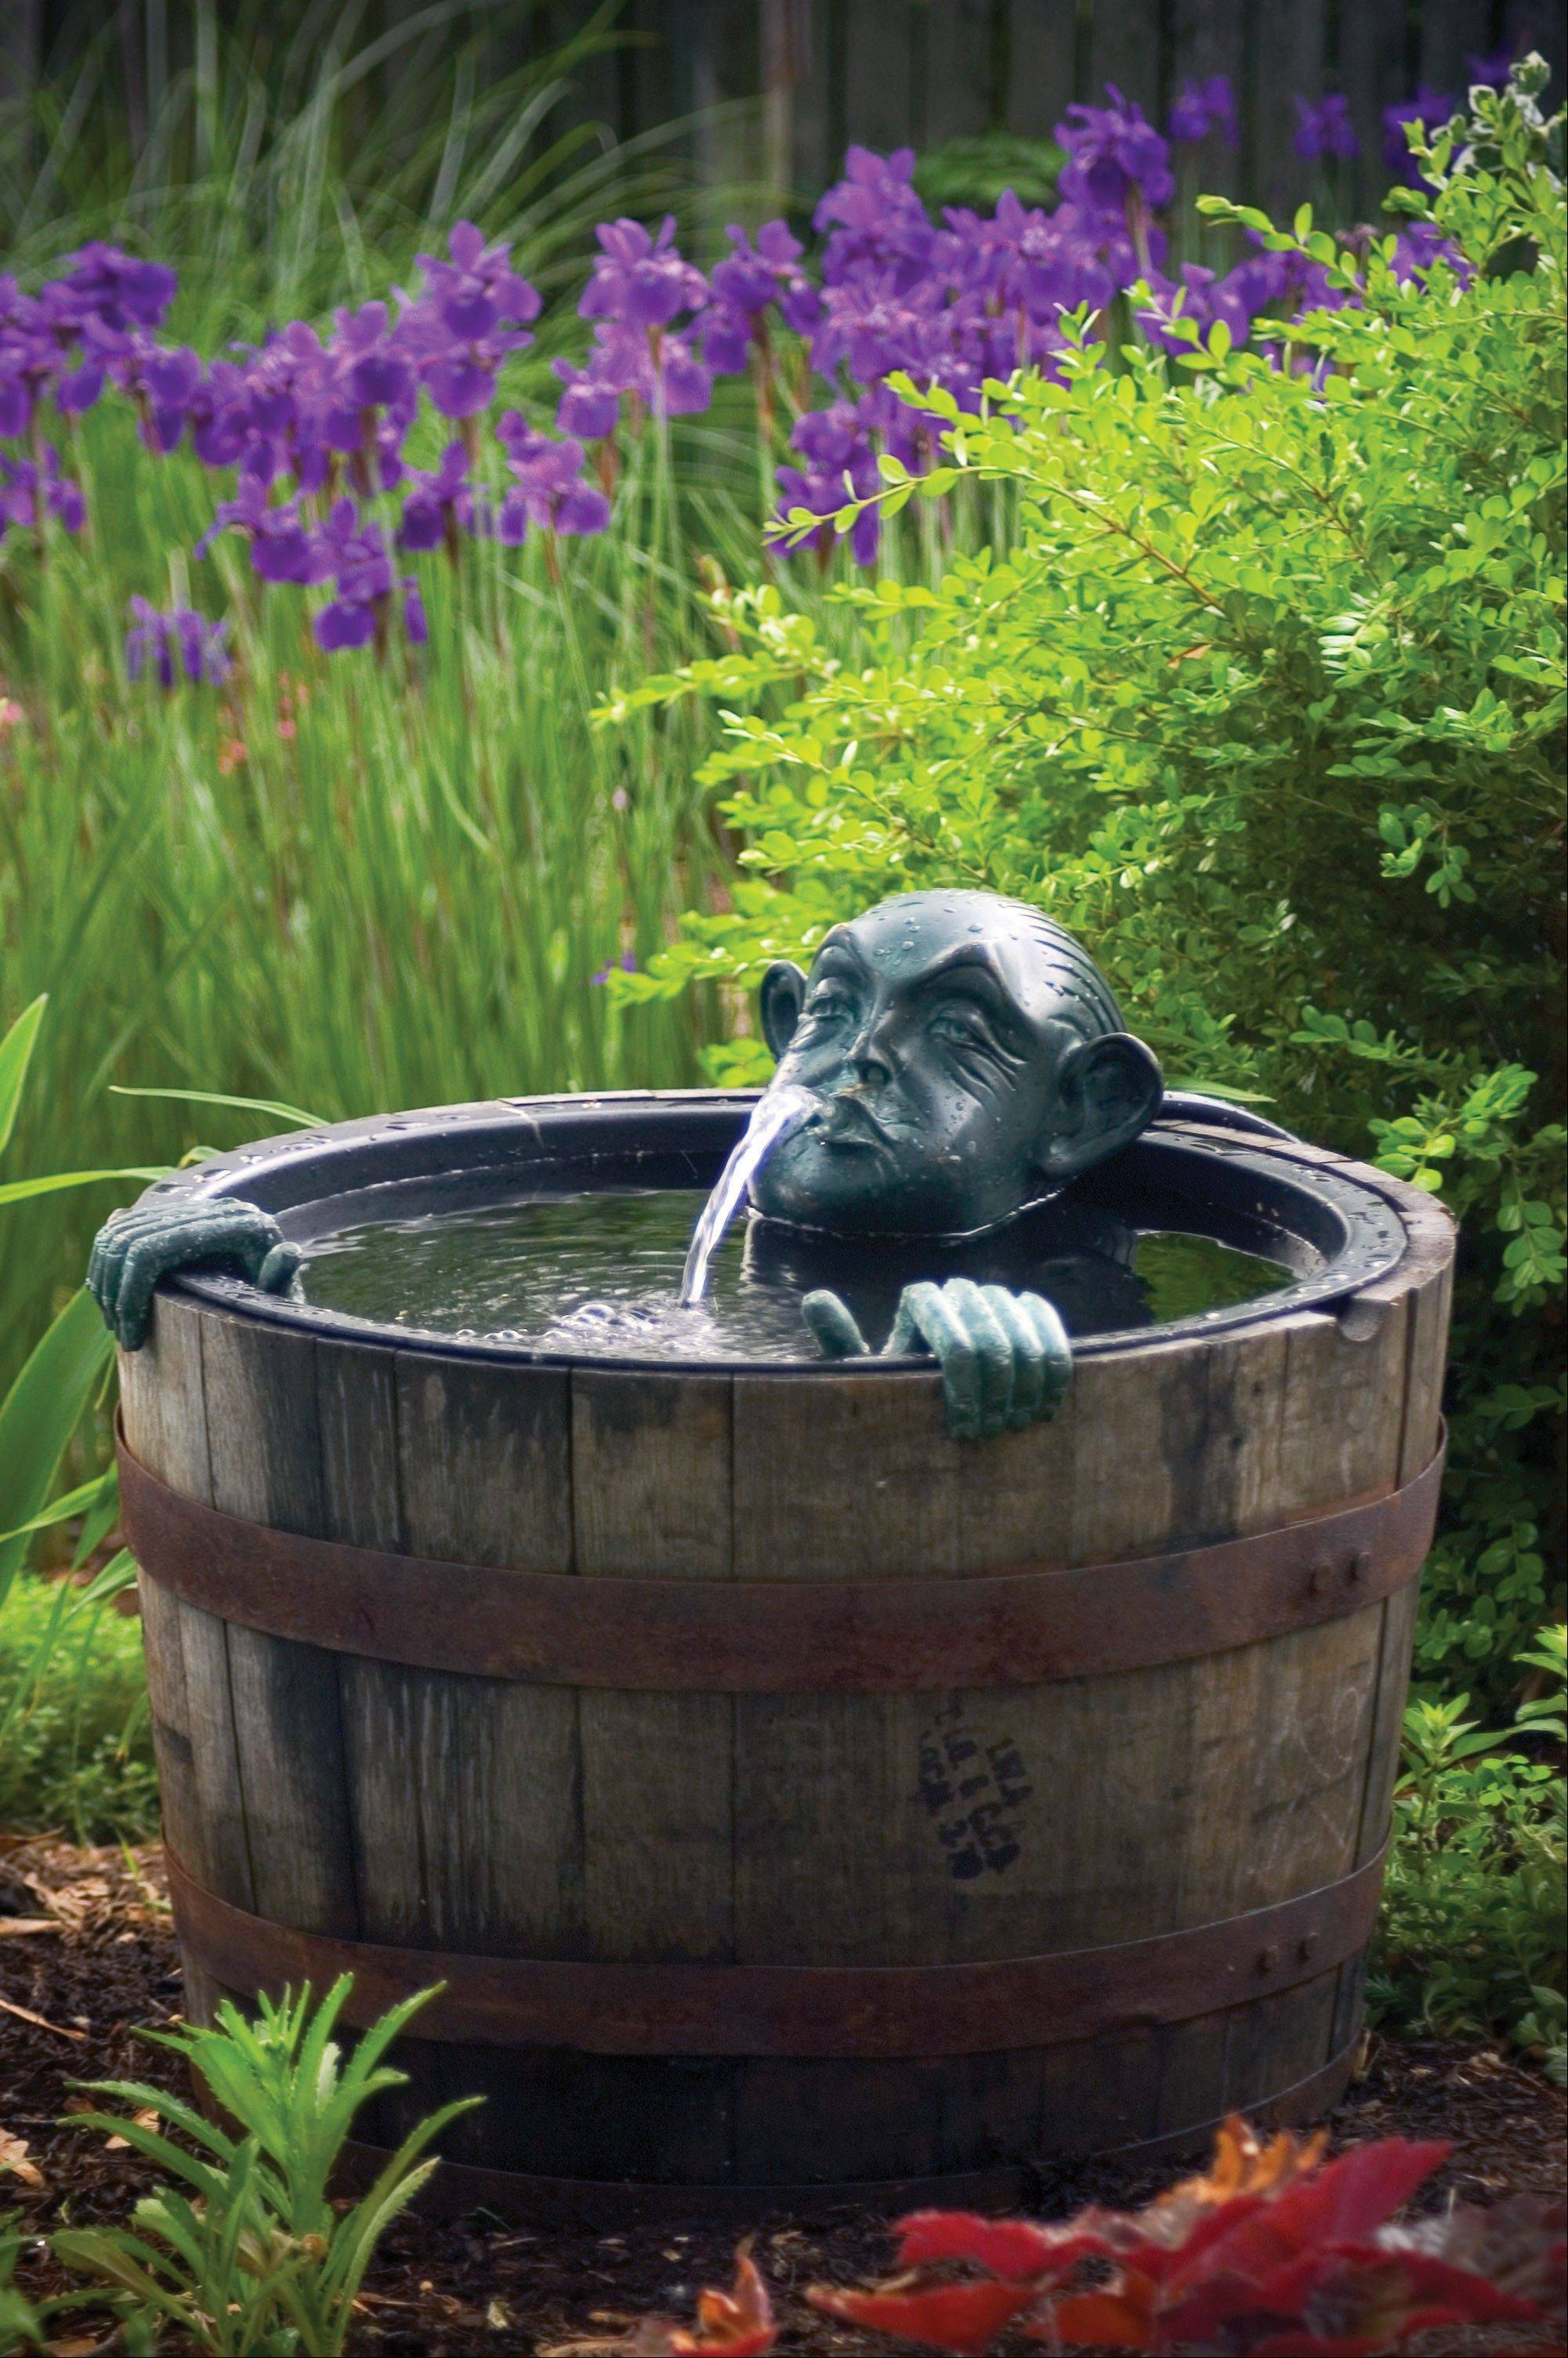 Water features can add whimsy to your small space.